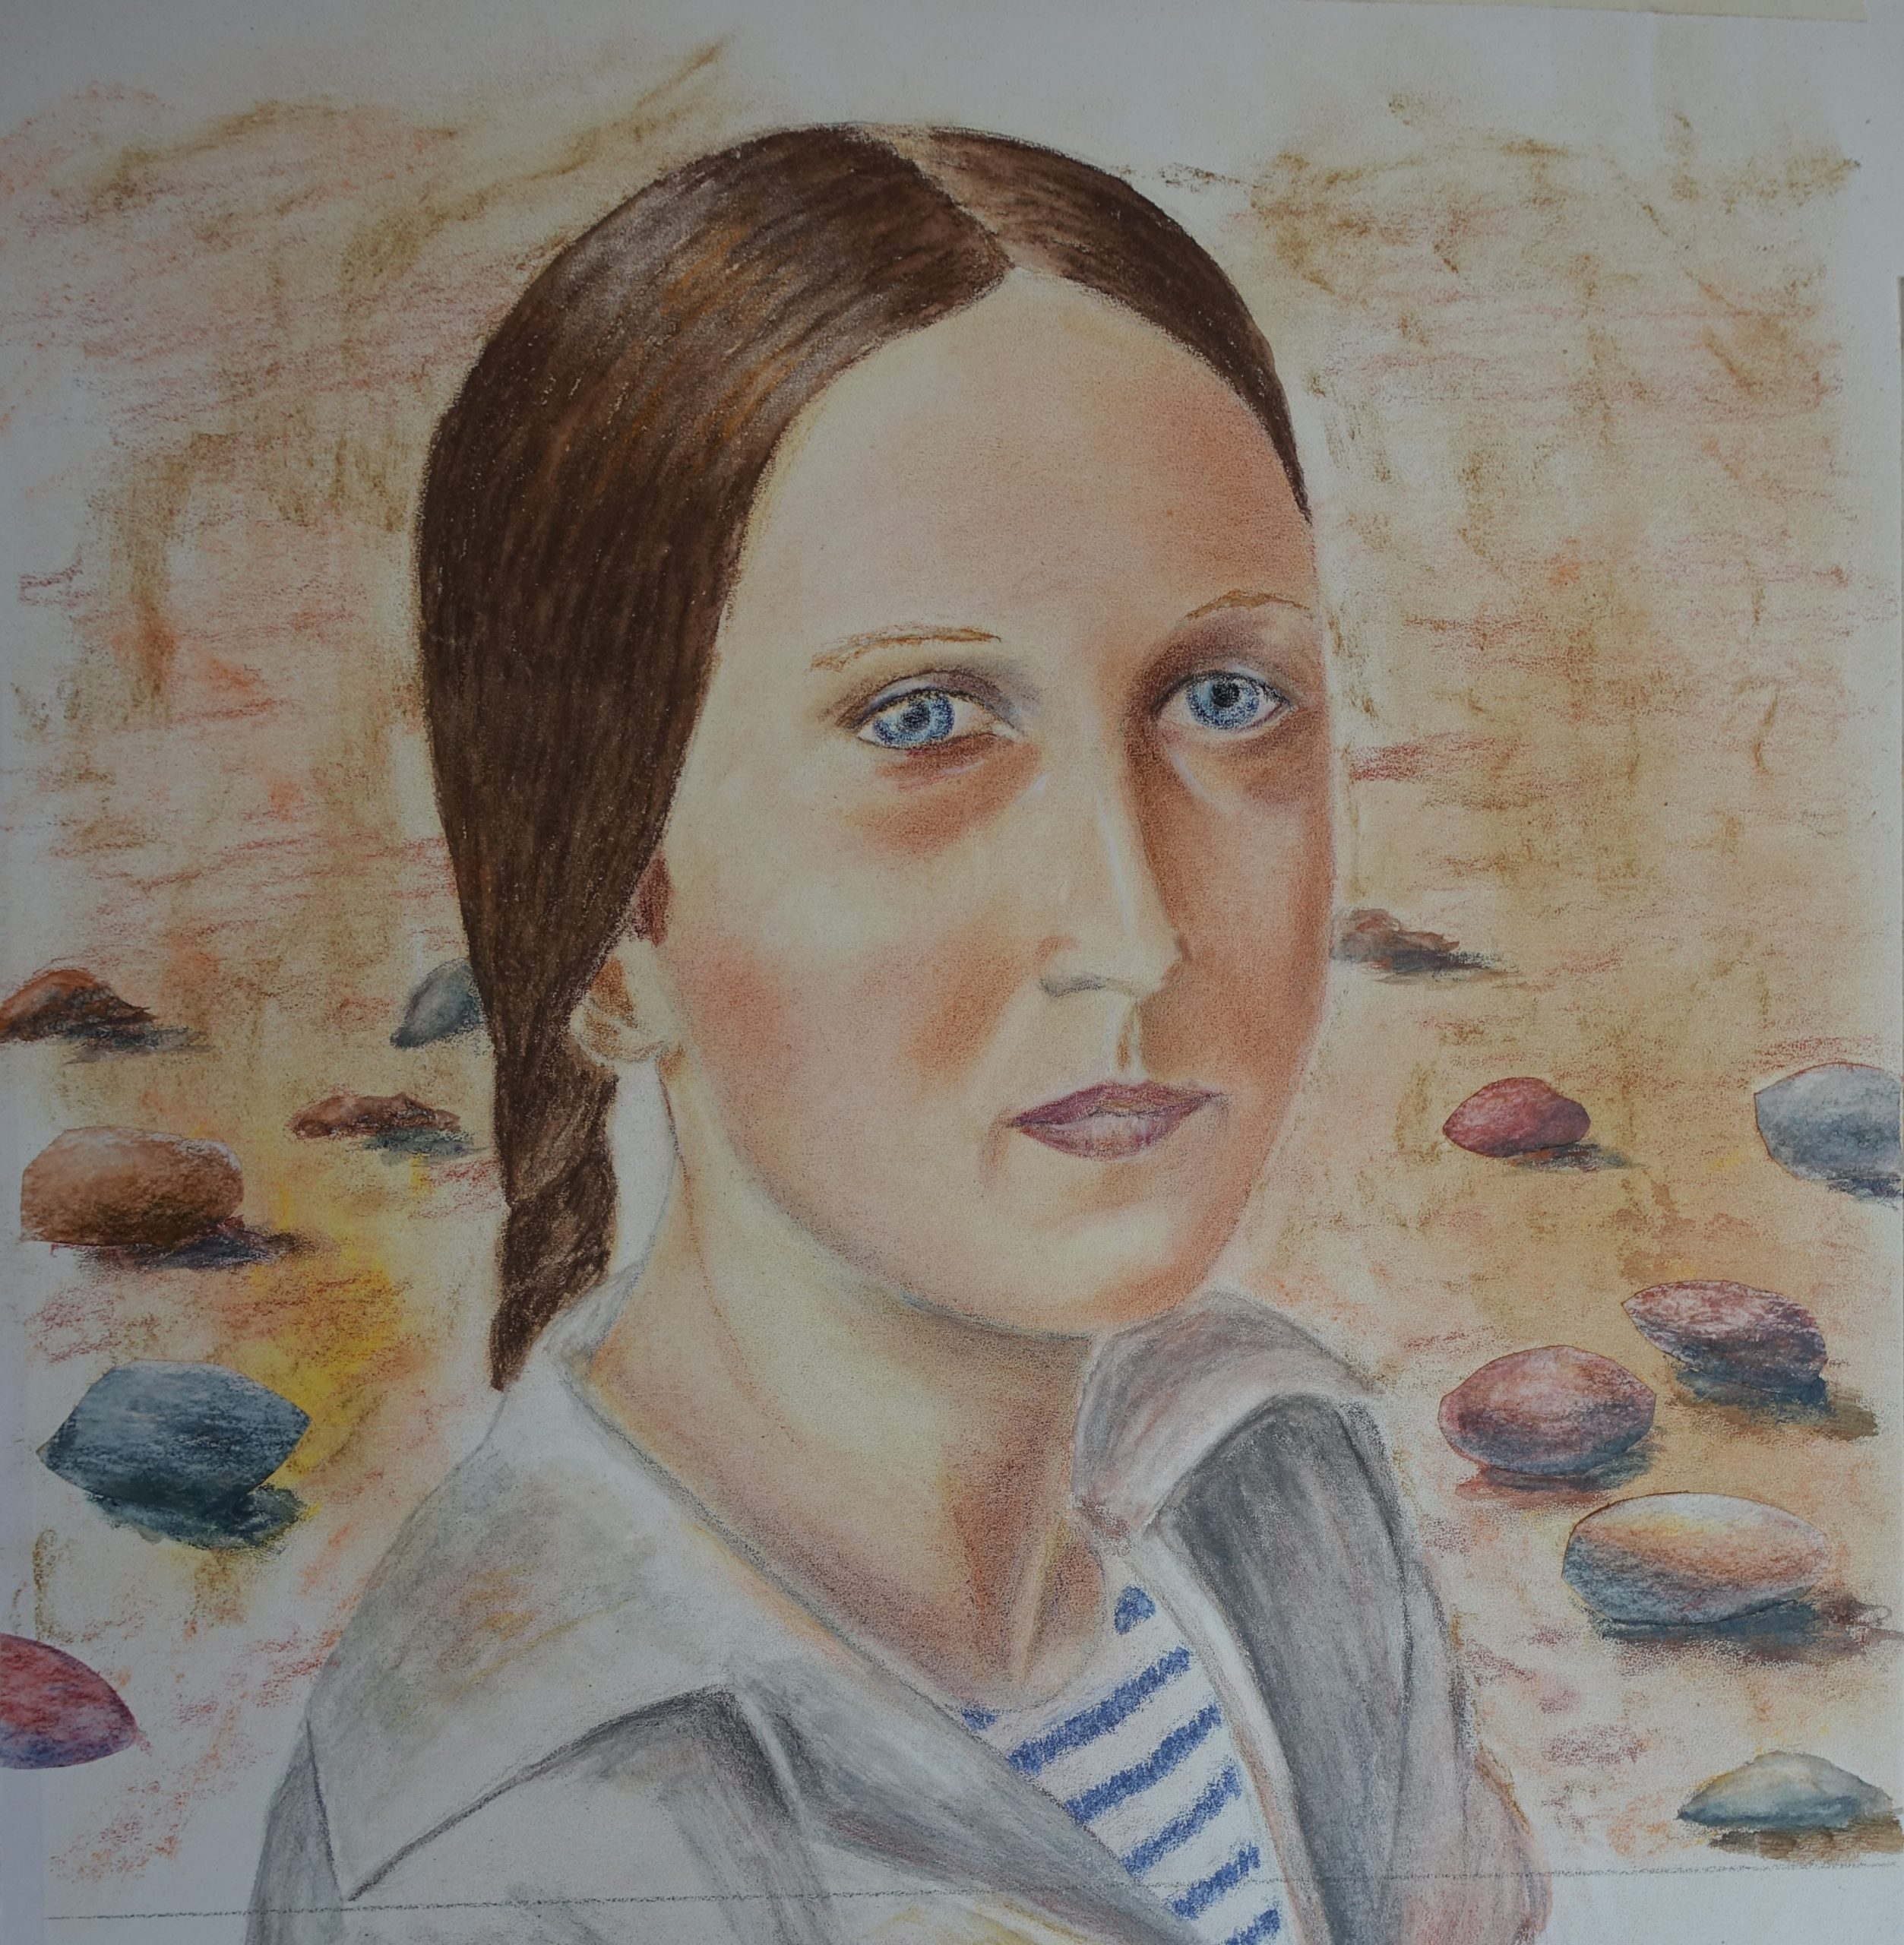 Mixed media work by John created at online art portrait course with west midlands artist Raya Brown